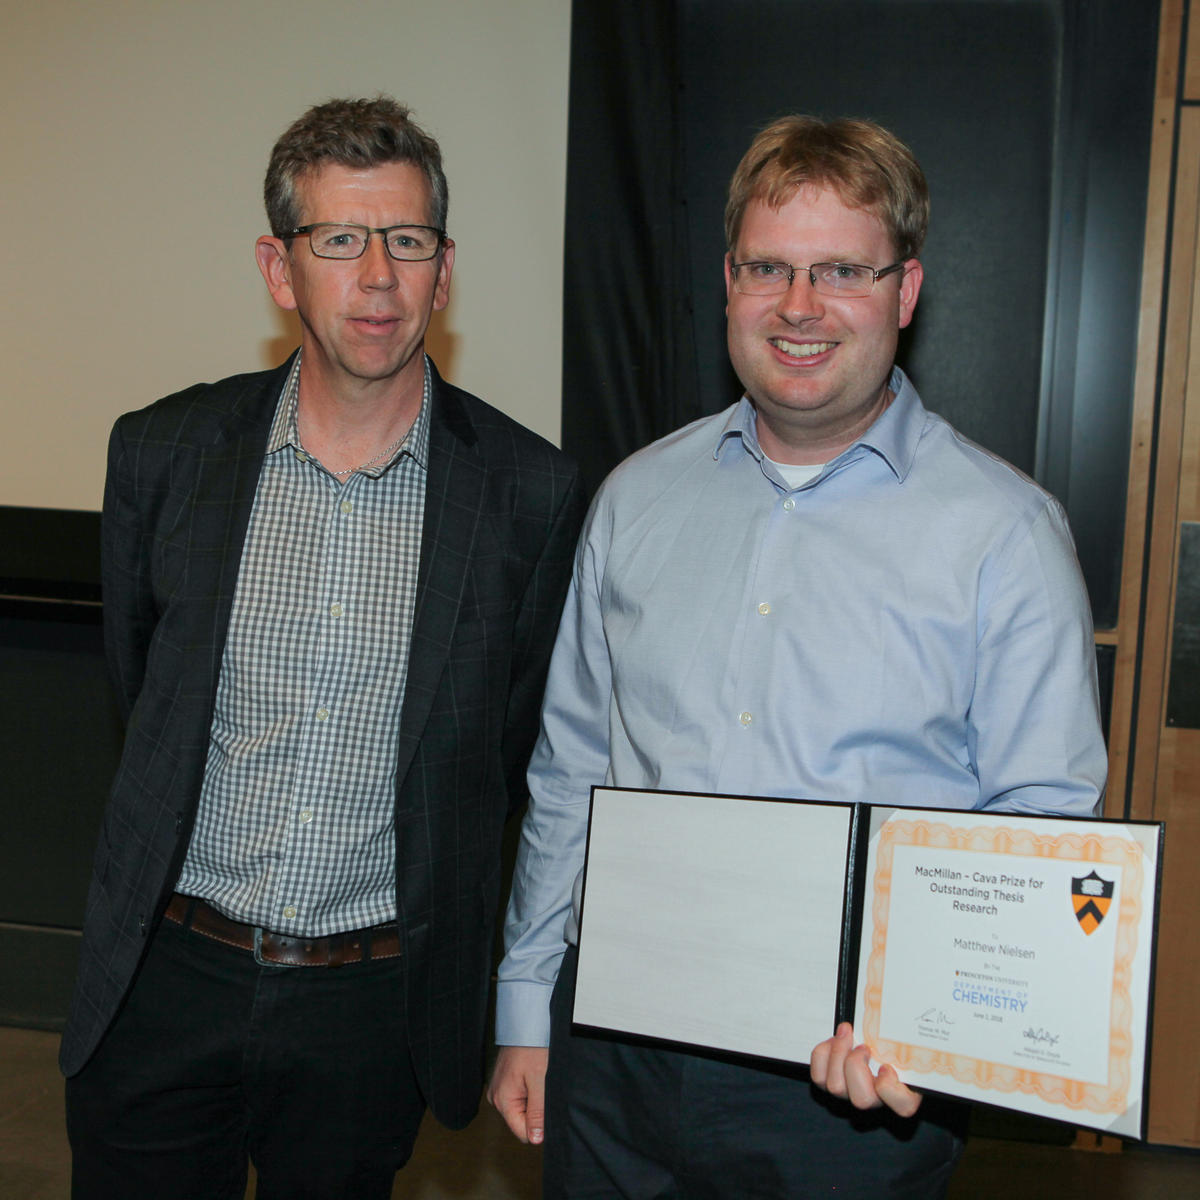 Tom Muir and Matthew Nielsen (Doyle lab), recipient of the MacMillan-Cava Prize for Outstanding Thesis Research